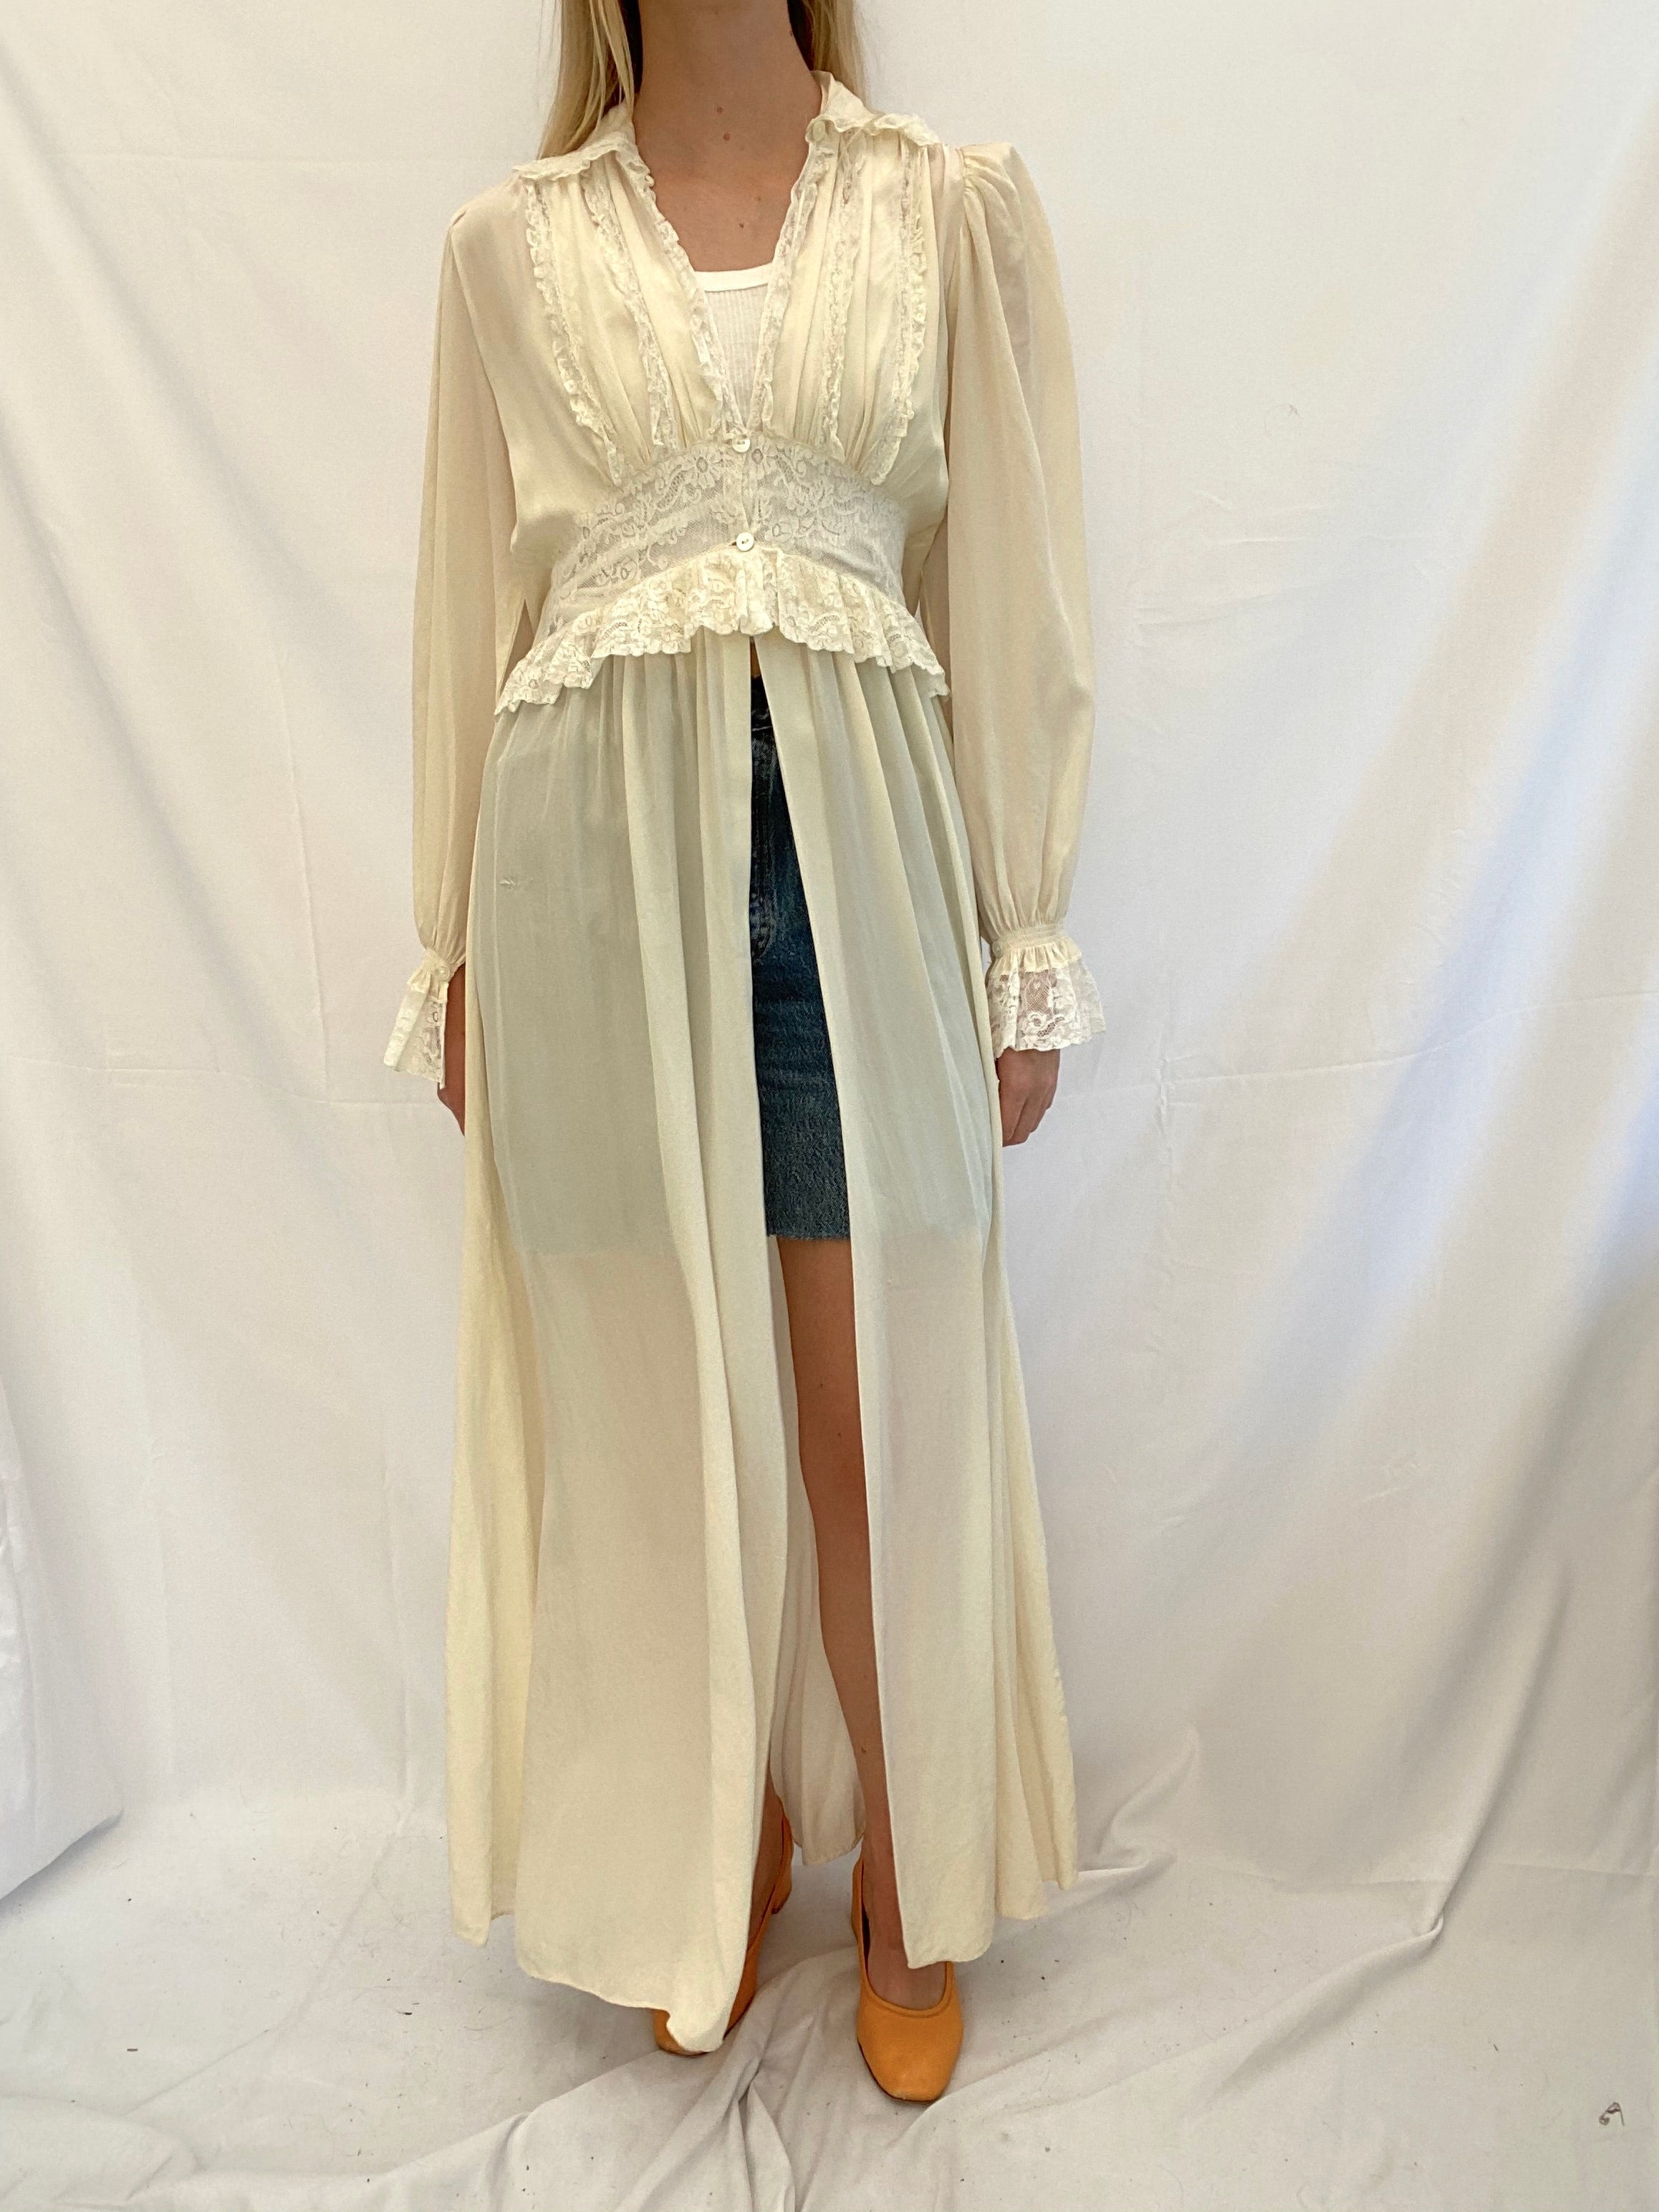 Cream and White Lace Silk Robe